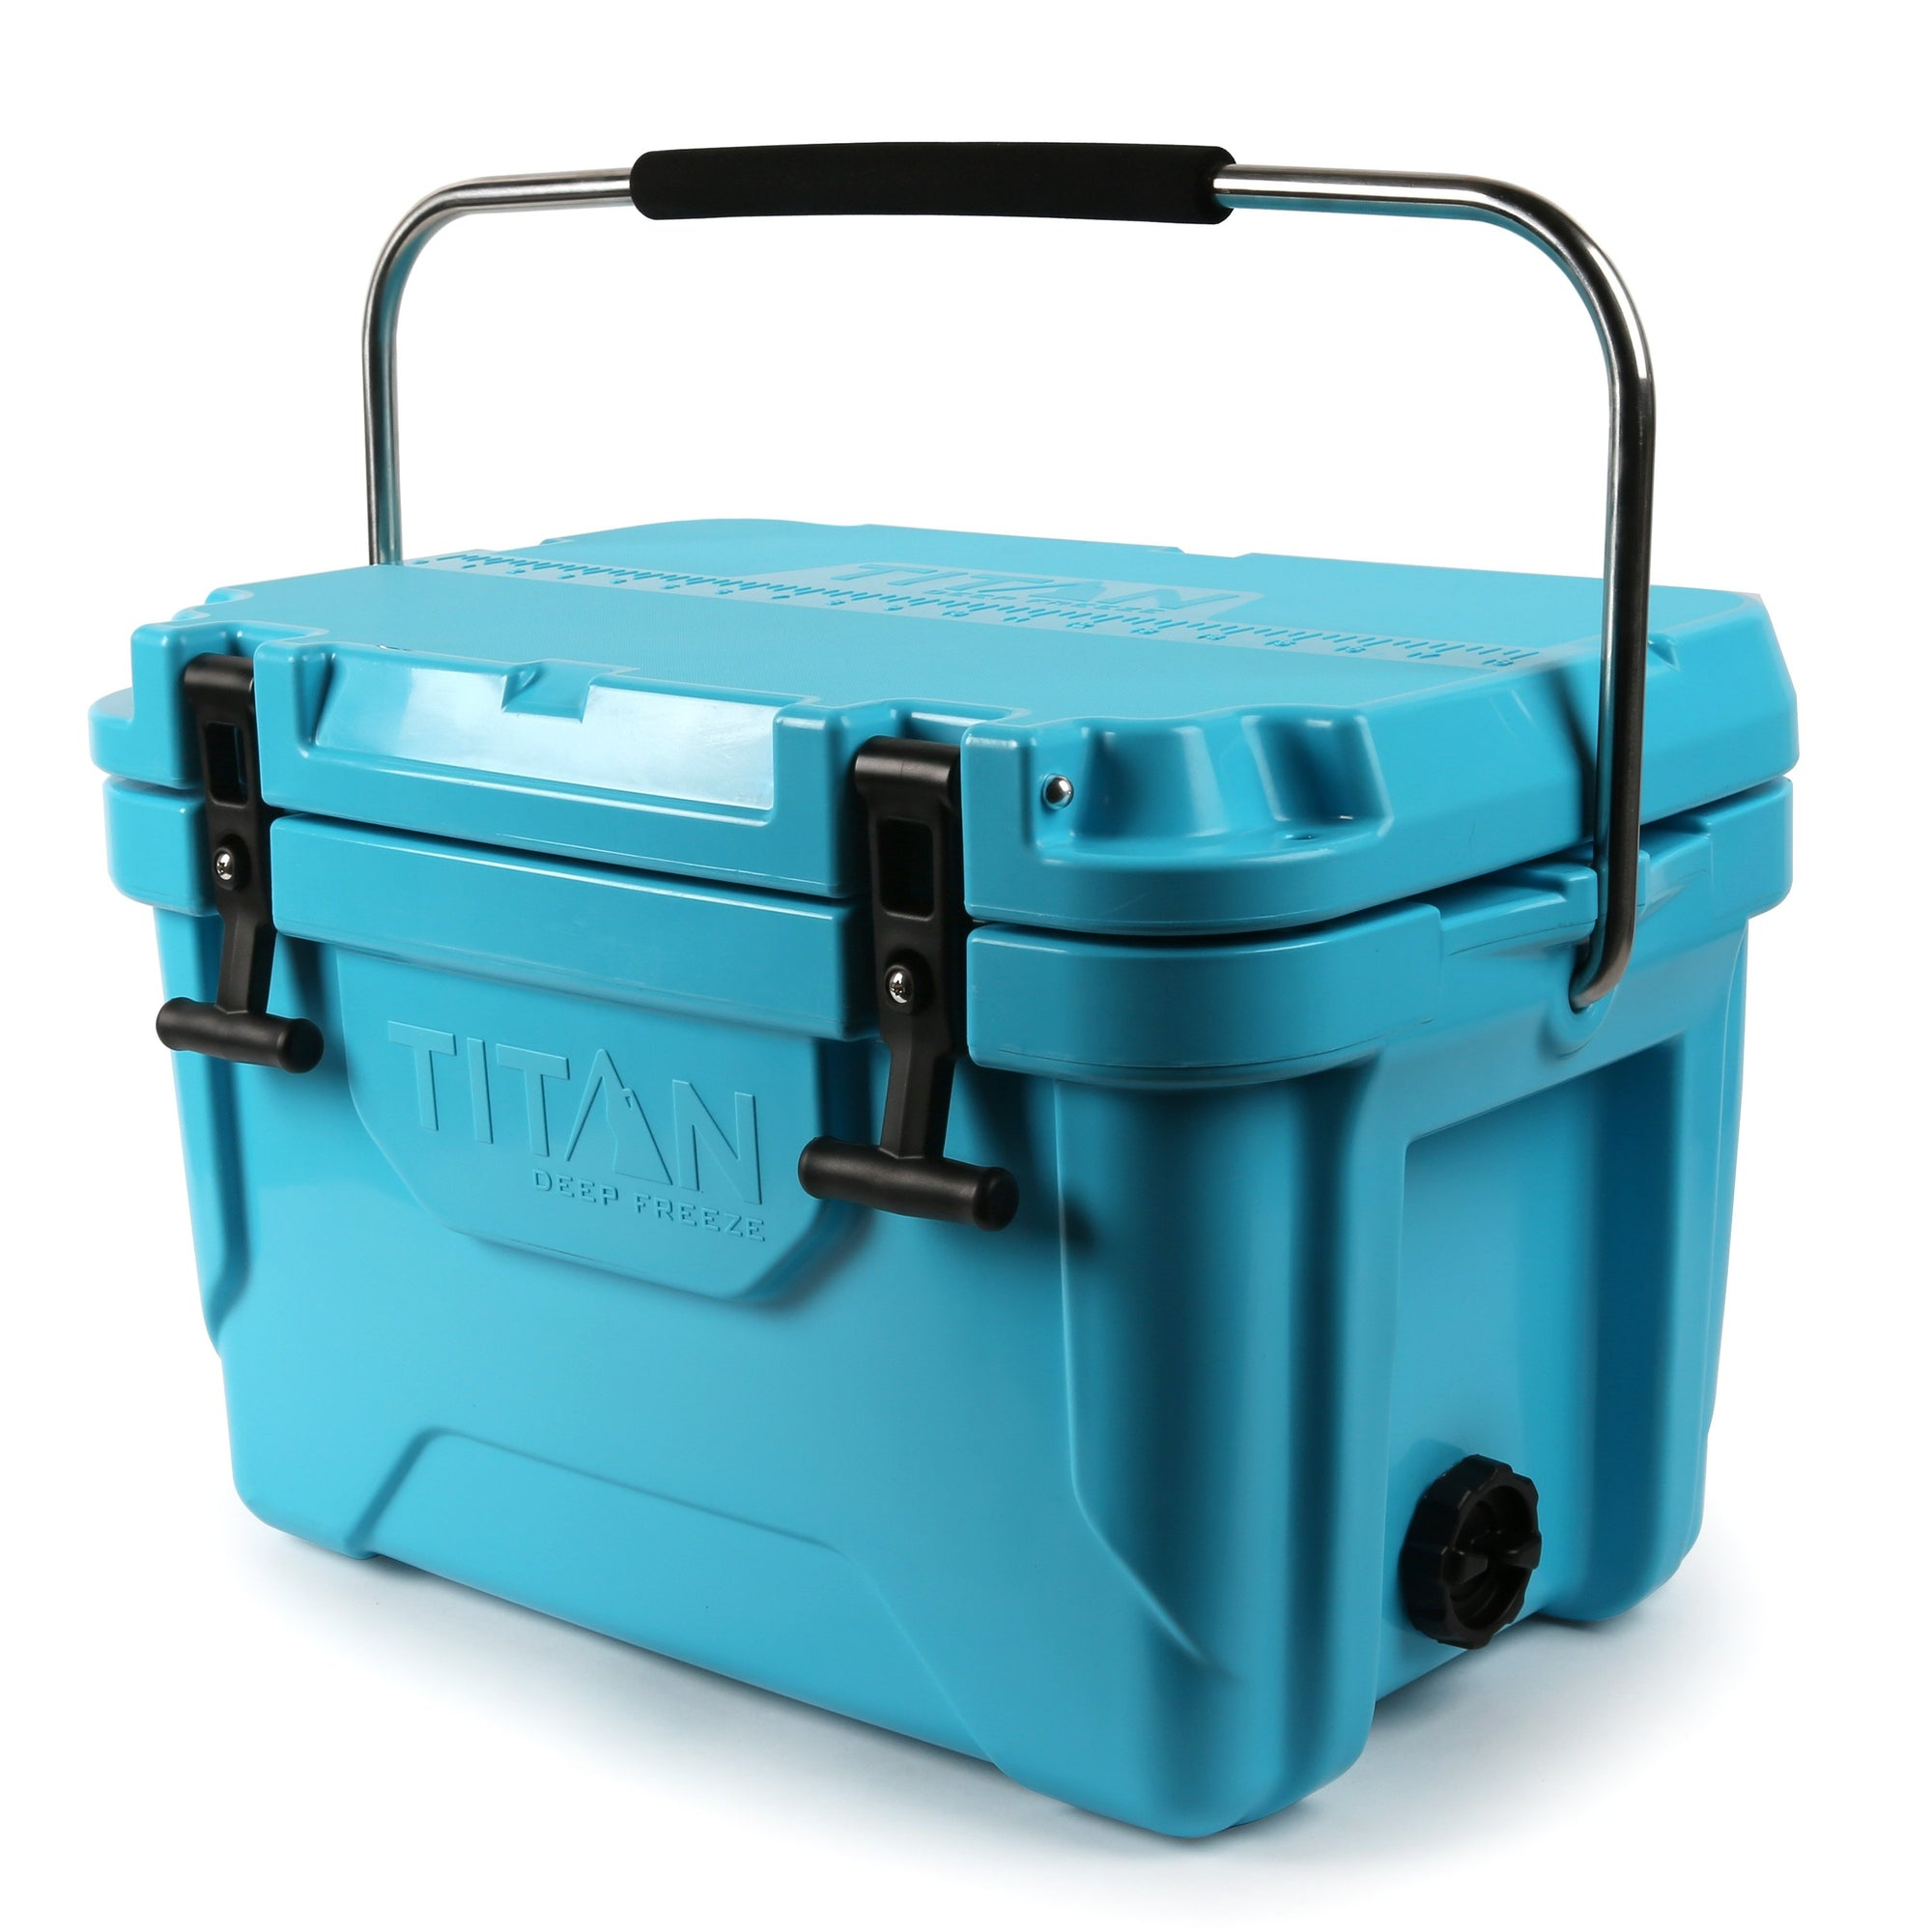 Titan Deep Freeze® 20Q Premium Ice Chest - Blue - Front, closed